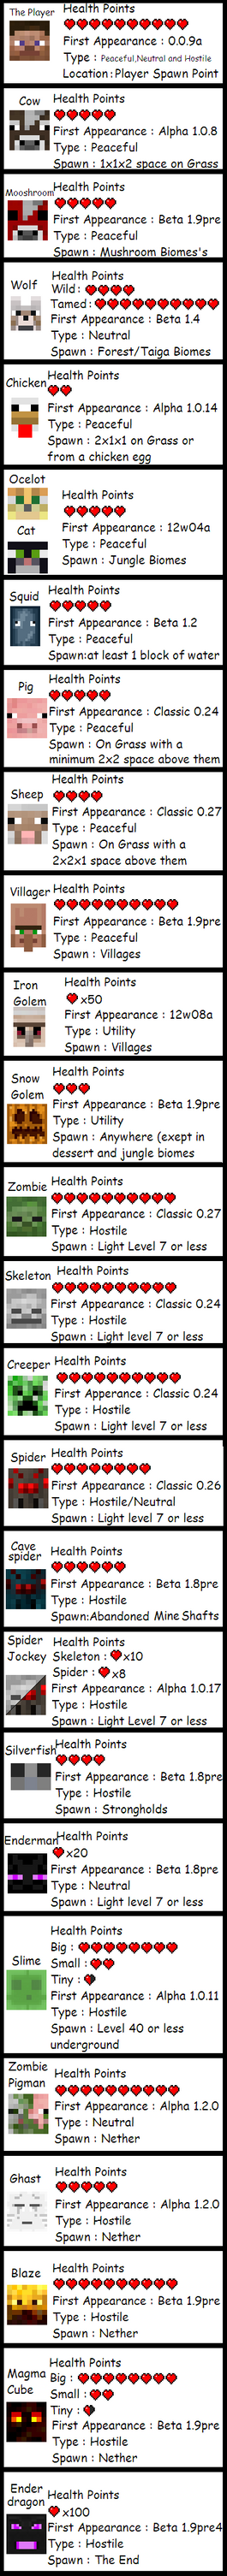 Minecraft - All Mobs - Basic Info by painbooster2